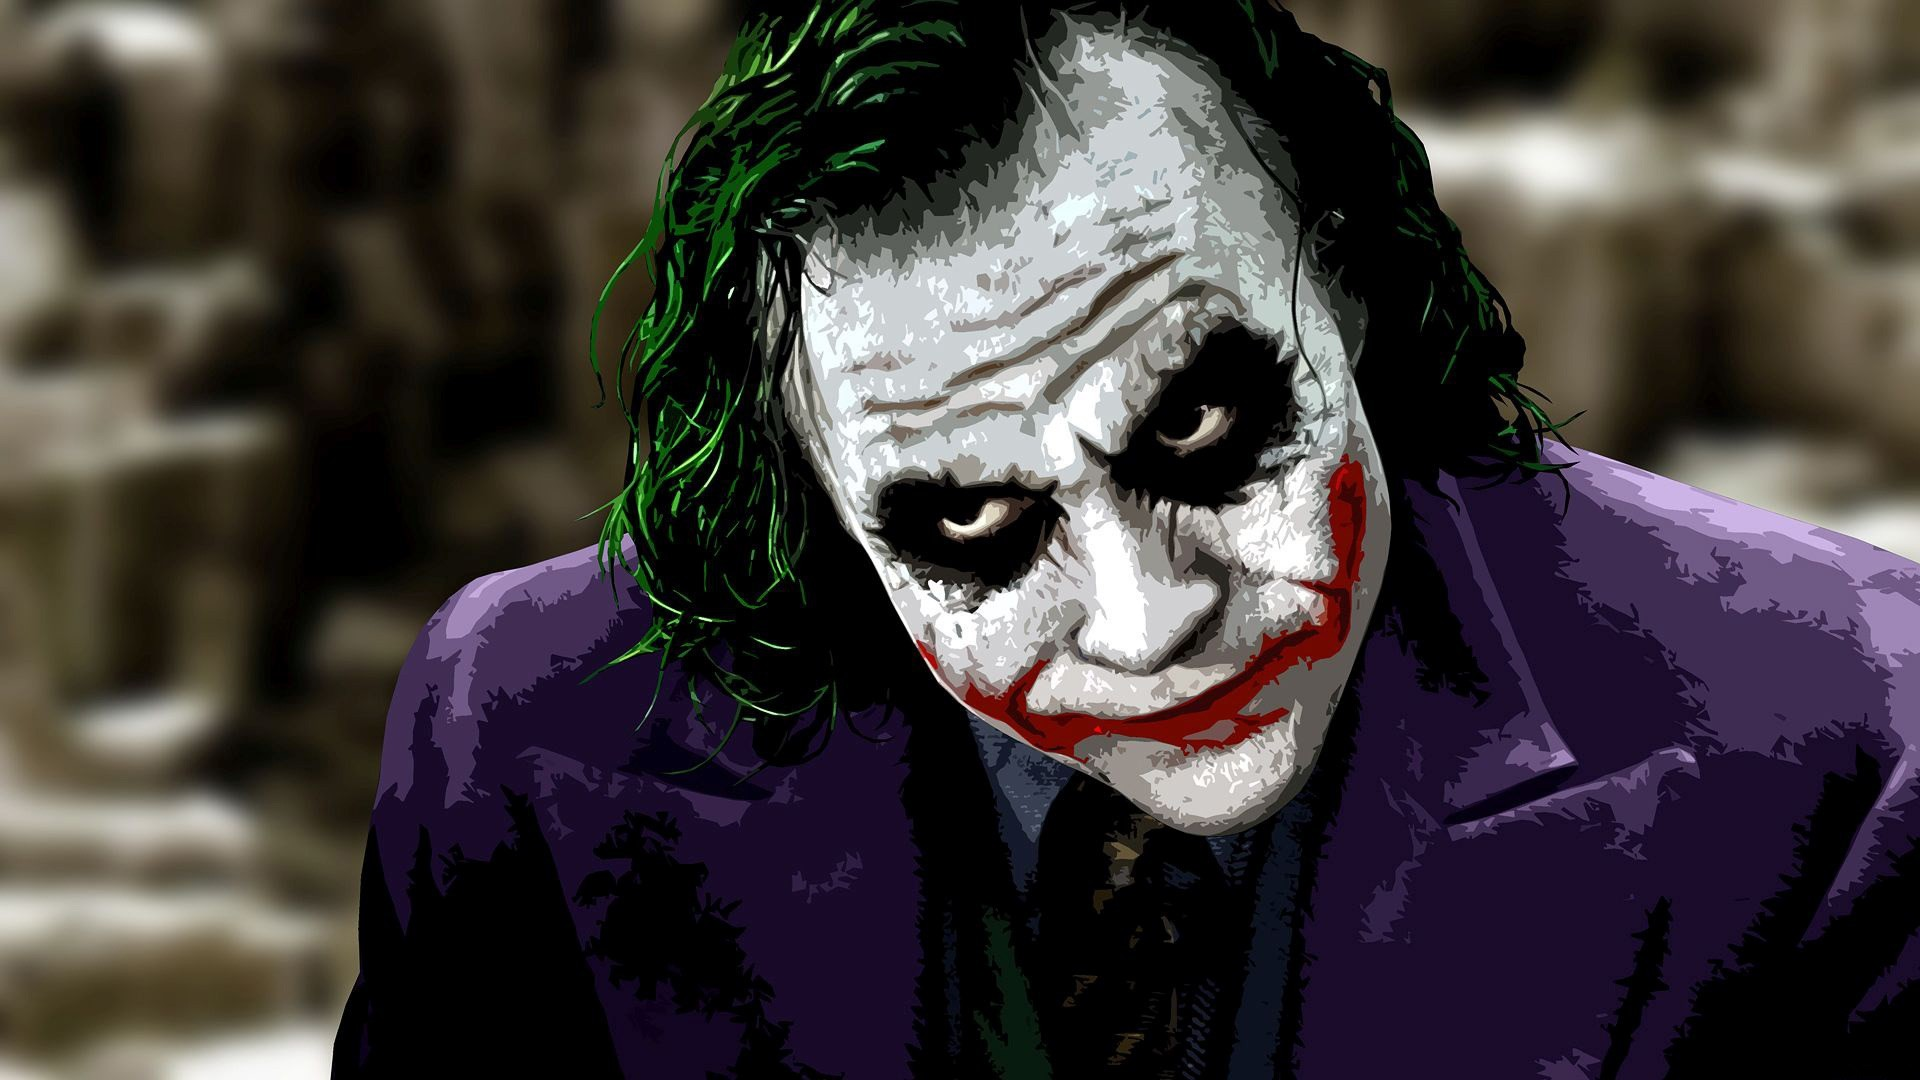 Joker Wallpaper Download 3d The Galleries Of Hd Wallpaper